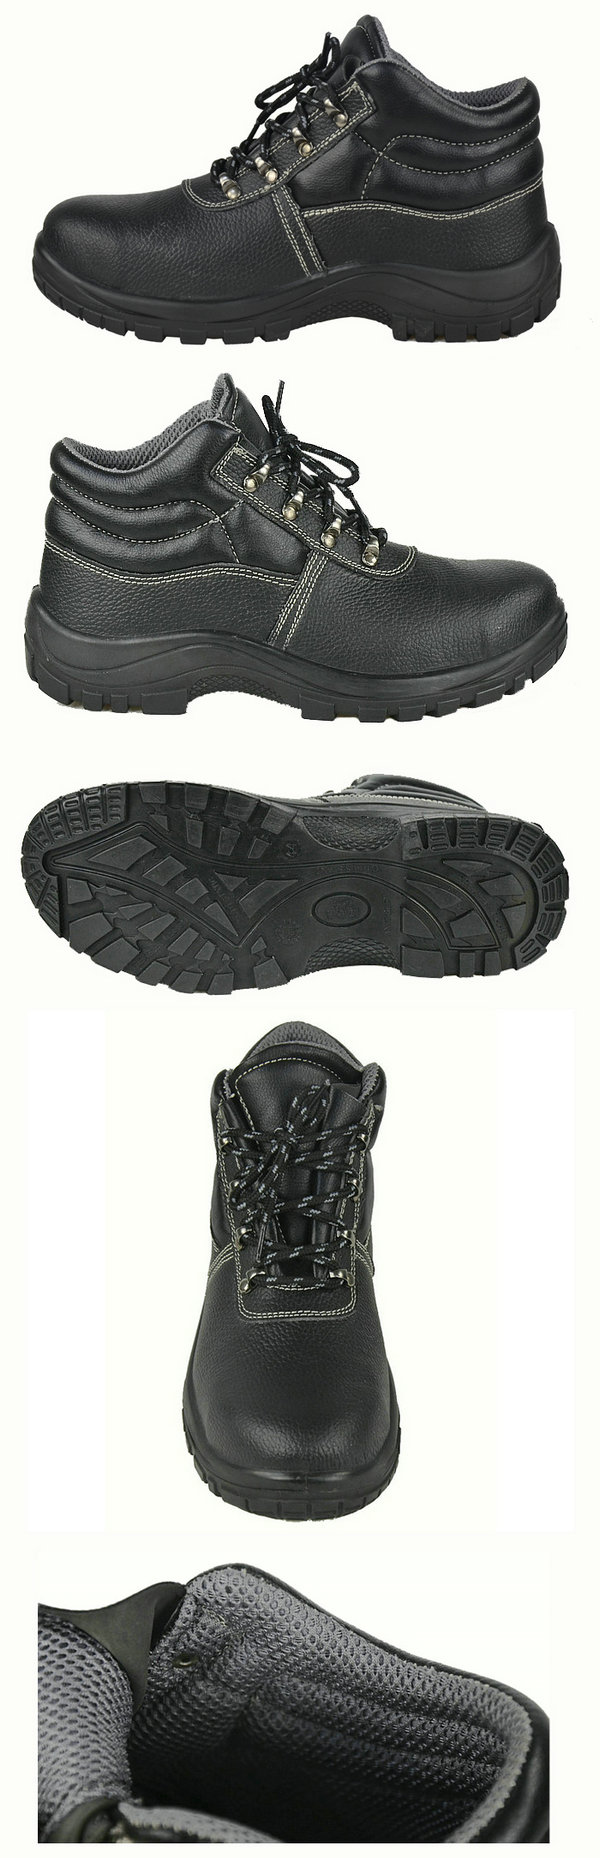 Classic Design Steel Toe Cap and Steel Midsole Safety shoes